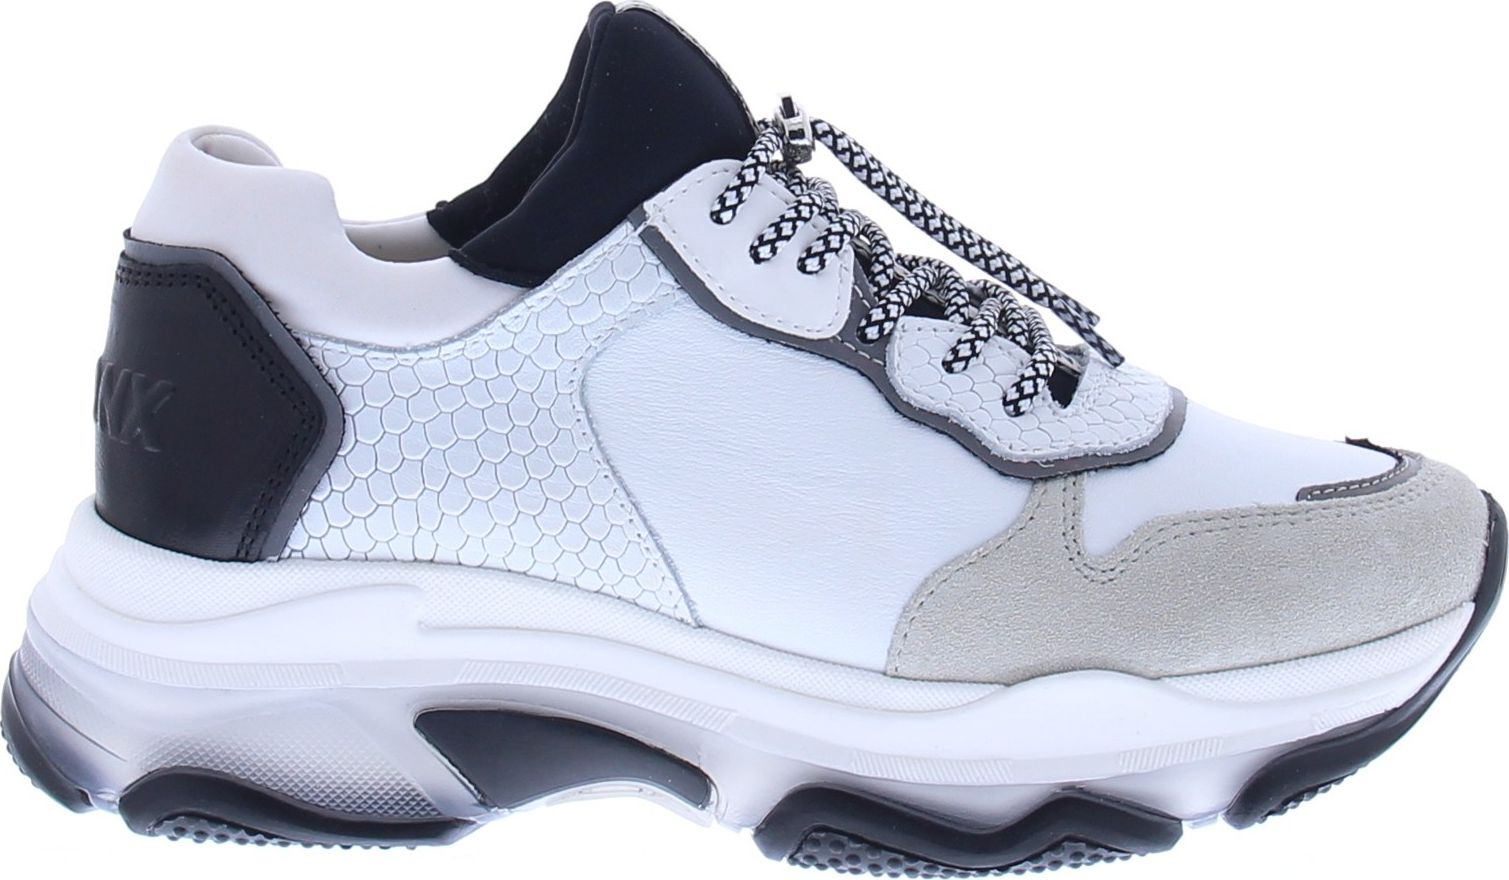 BRONX 1525 Baisley Light Grey/White/Black 40